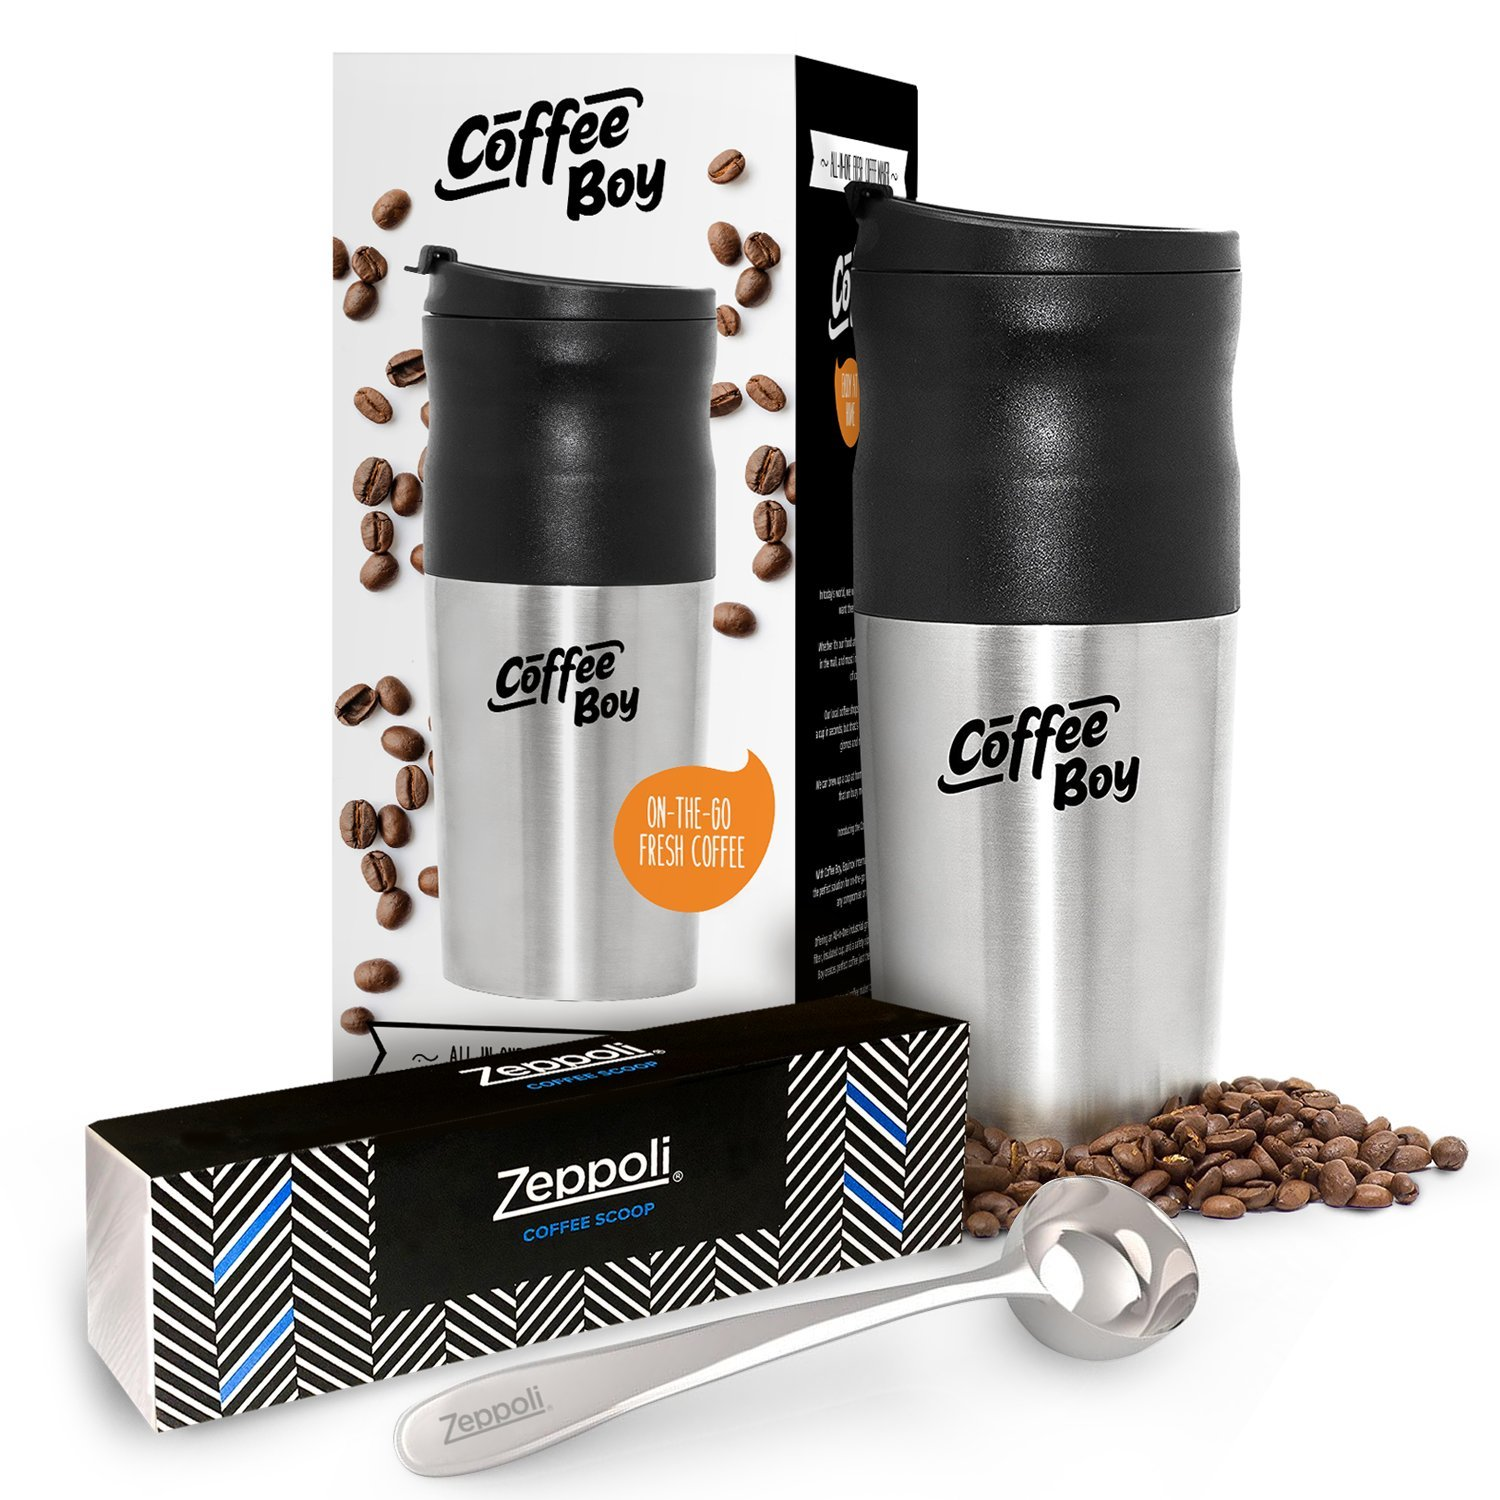 Coffee Boy All-in-One Portable Coffee Maker by Equinox with Stainless Steel Zeppoli 1.5 Tablespoon Coffee Scoop [Limited Edition Bundle]